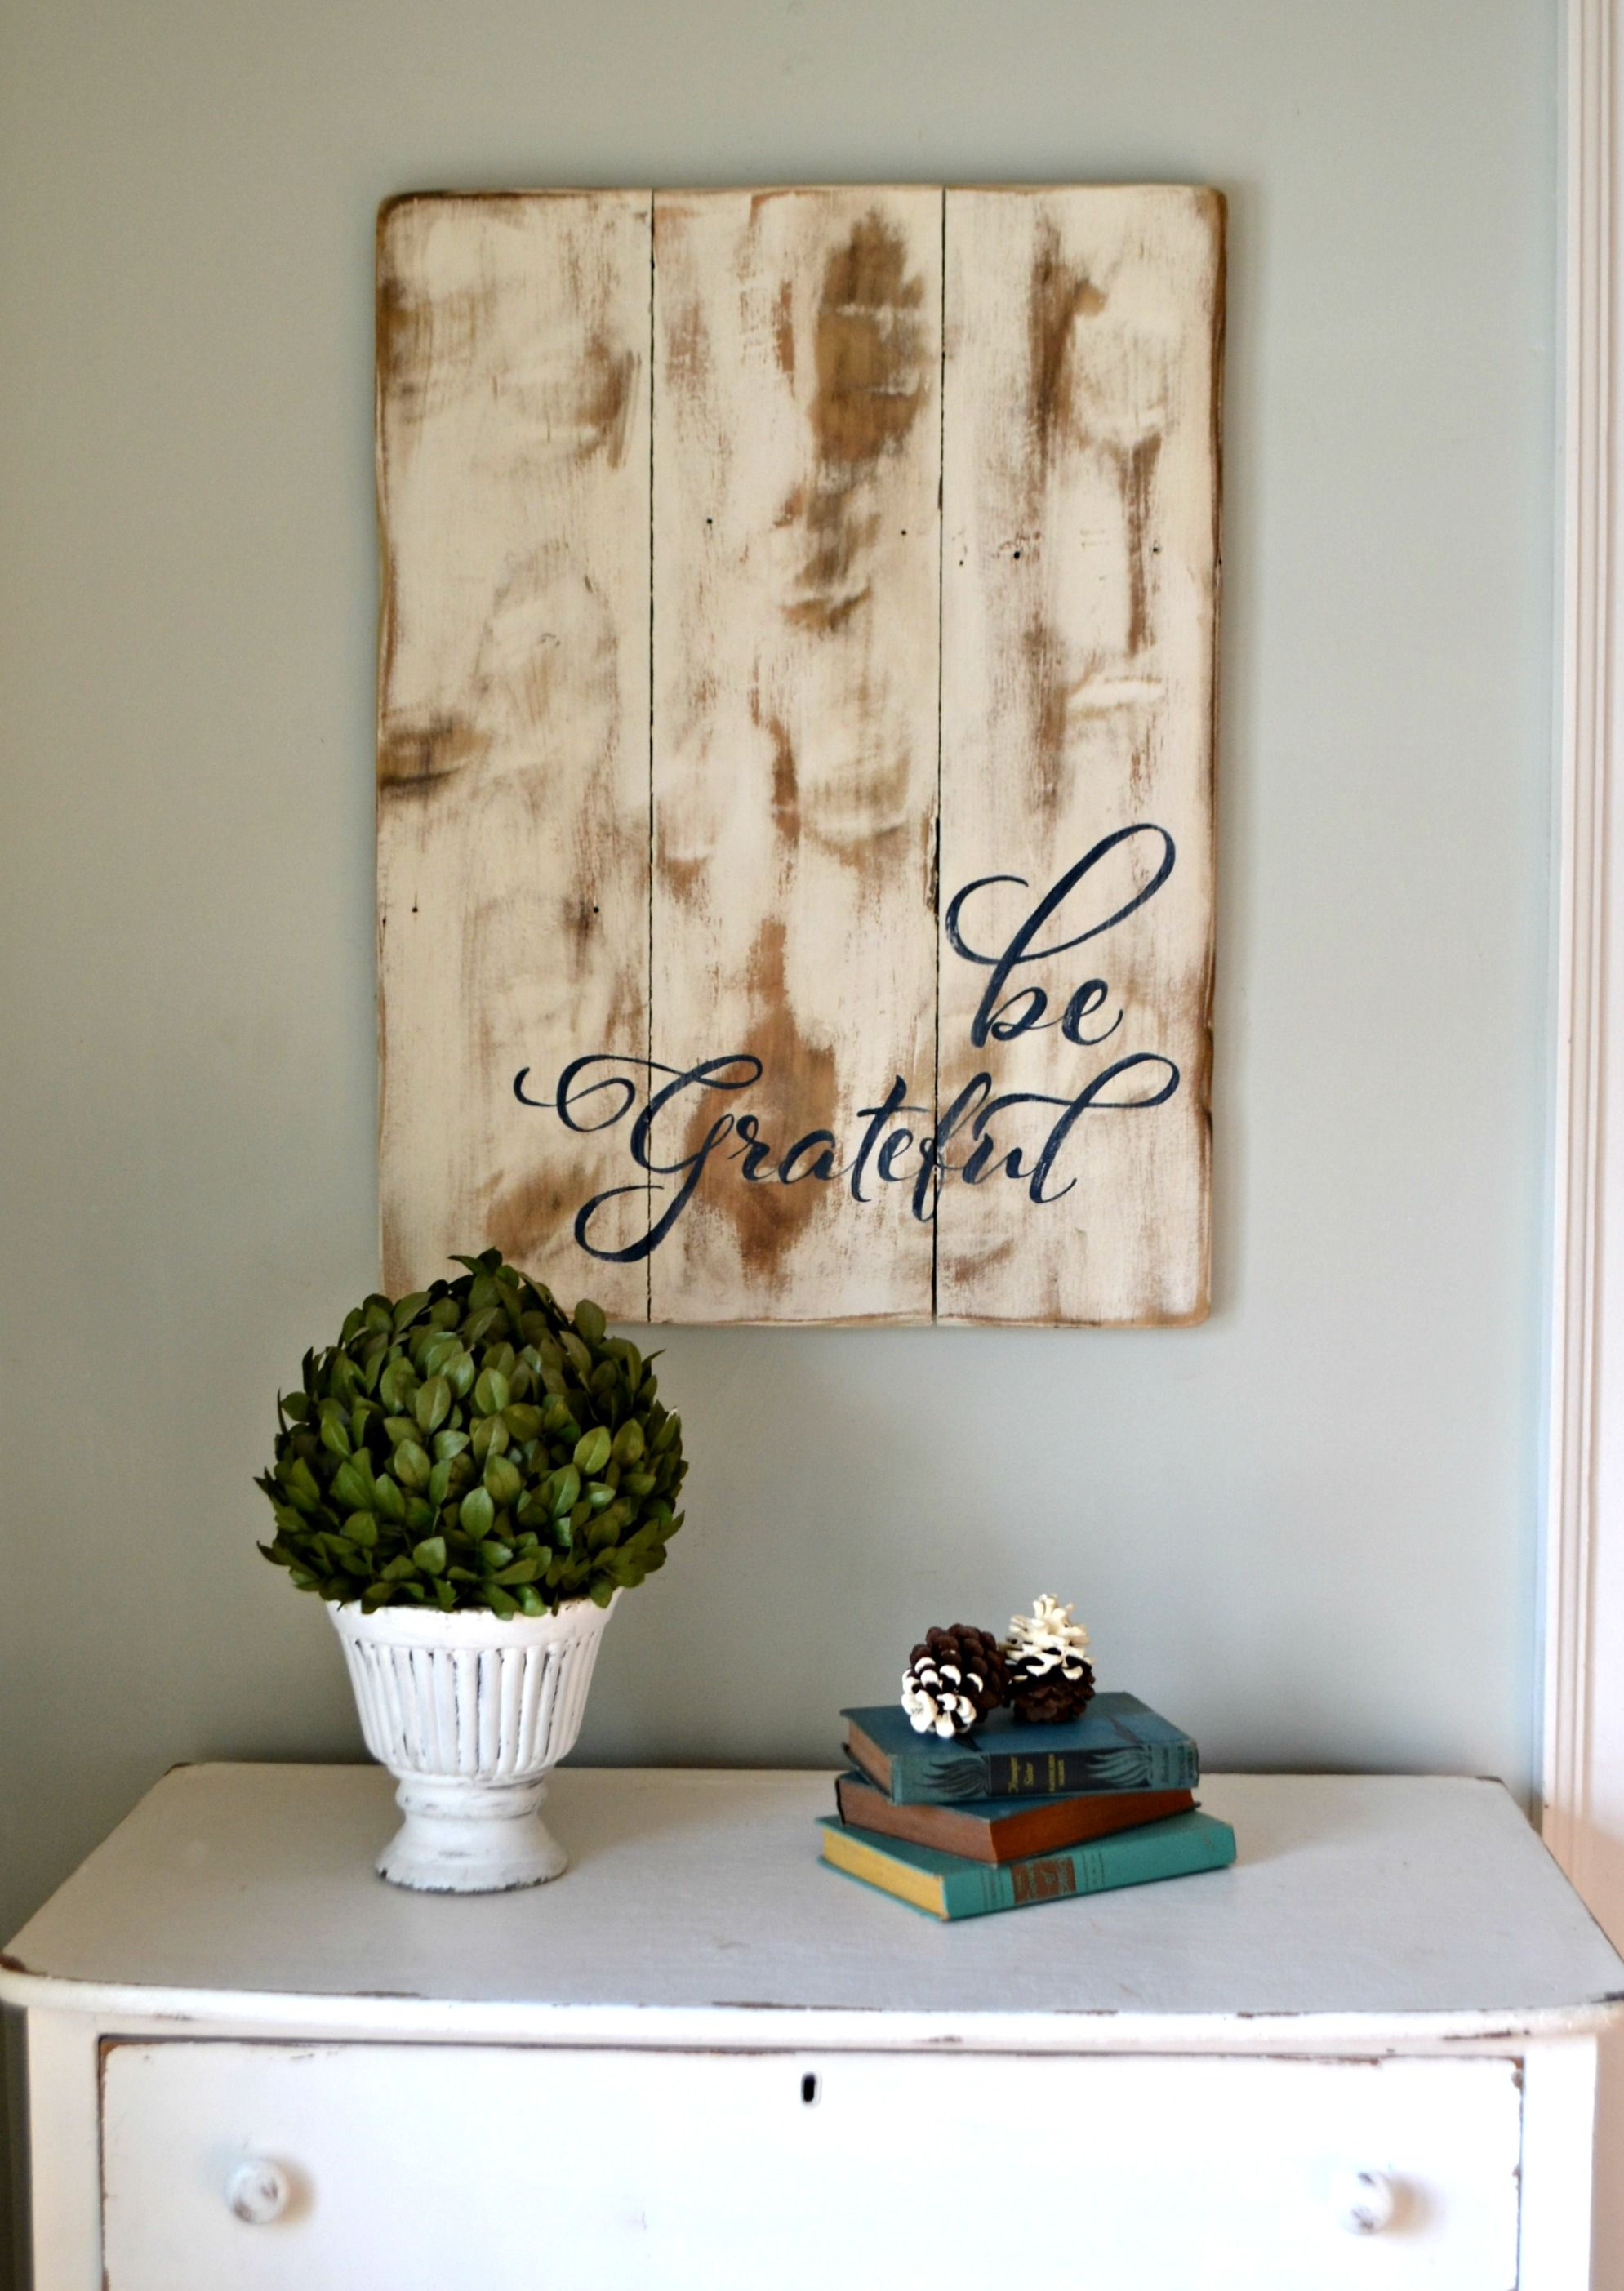 Recent Signs (With images) | Wood signs, Wood pallet signs ...